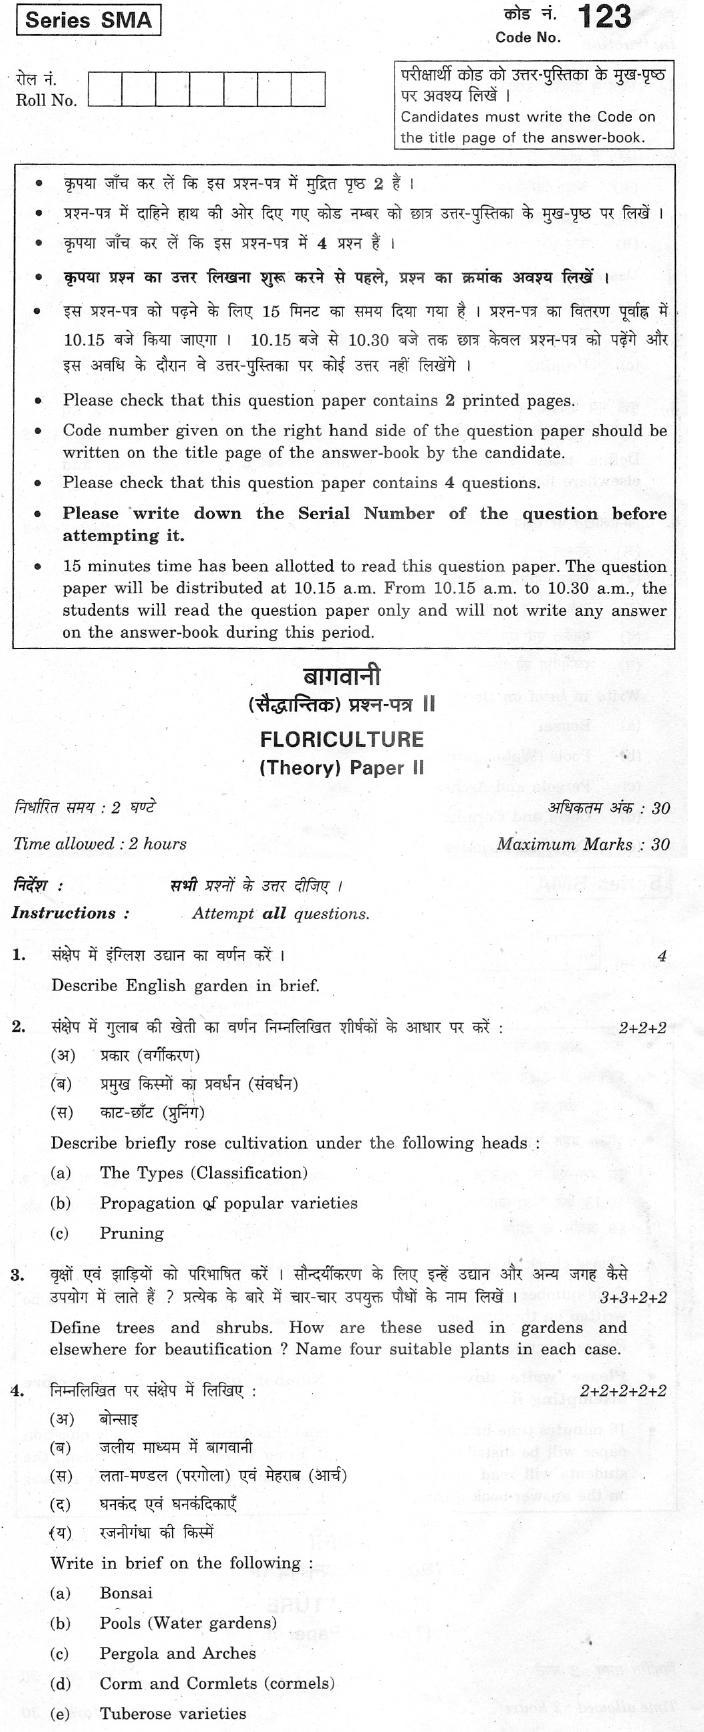 CBSE Class XII Previous Year Question Paper 2012 Floriculture